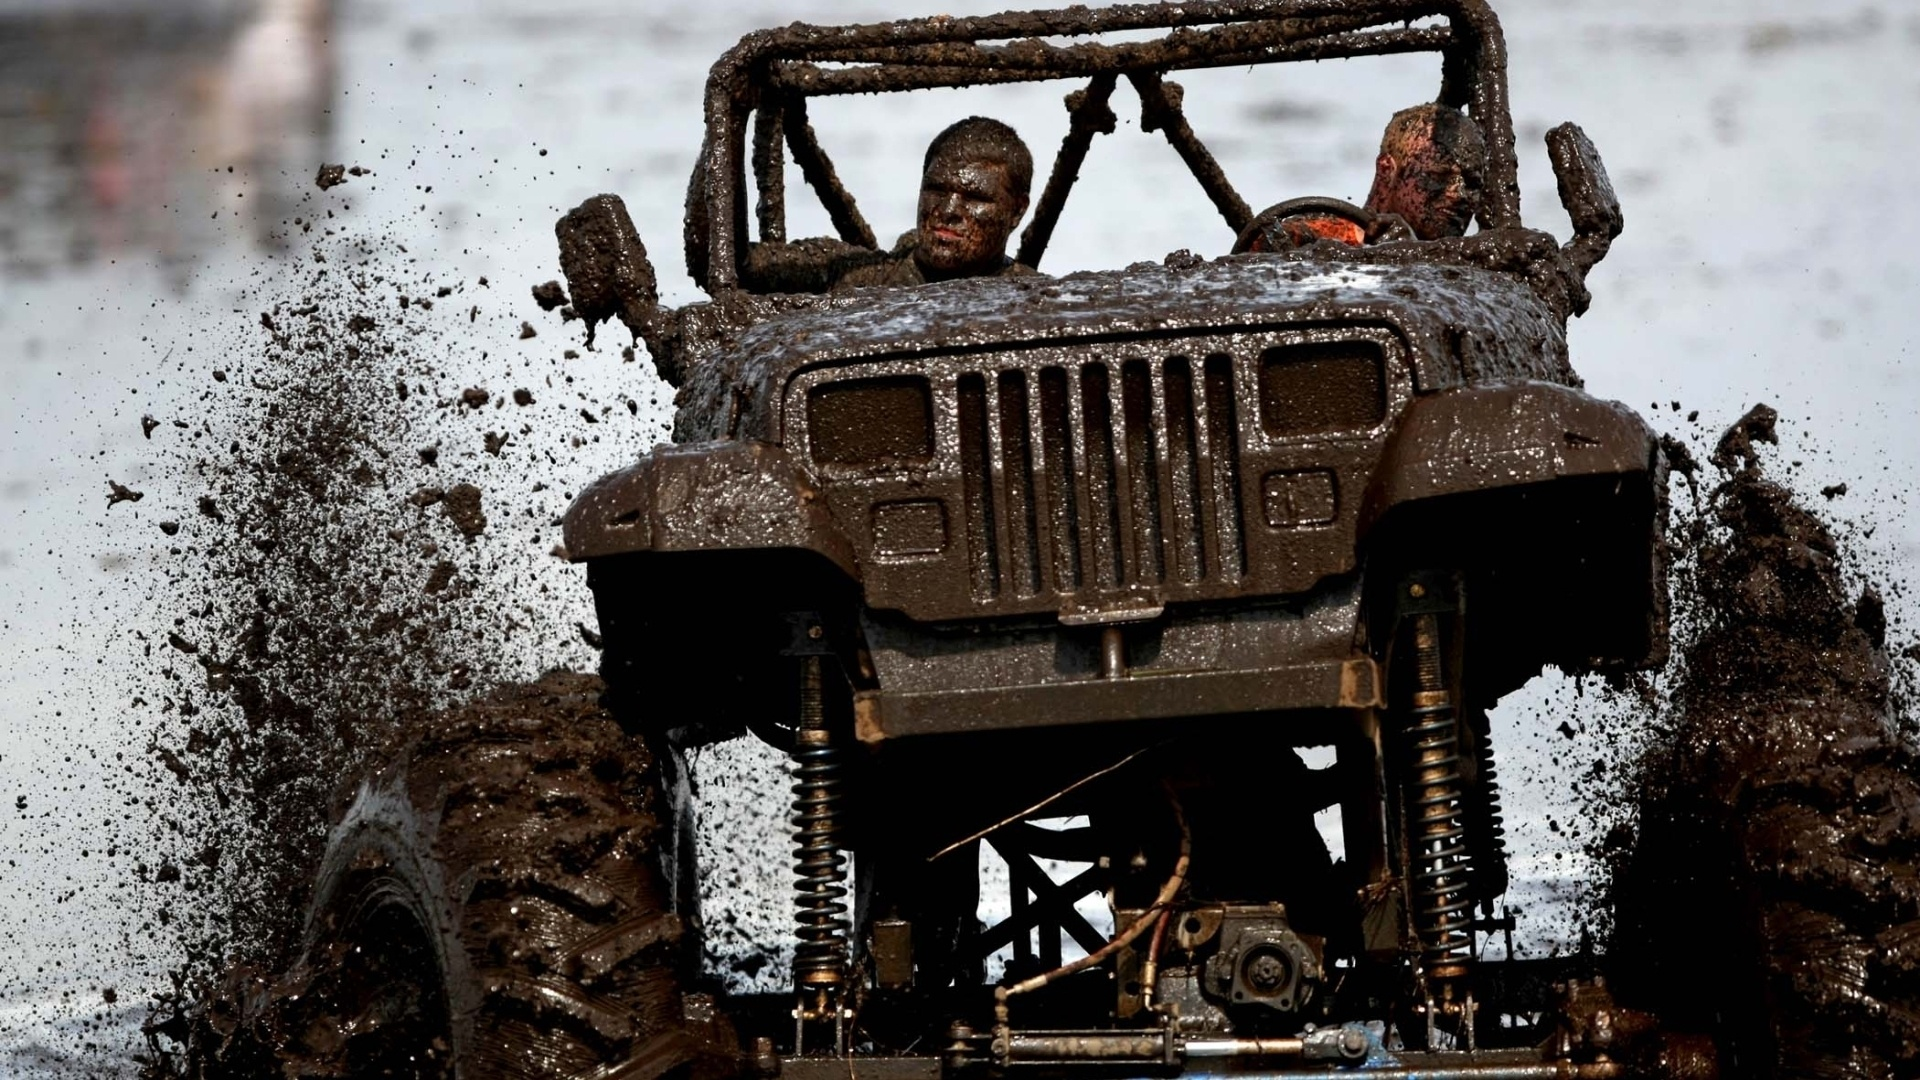 Jeep Rengler 4x4 Off Road Competition   1920x1080   813695 1920x1080